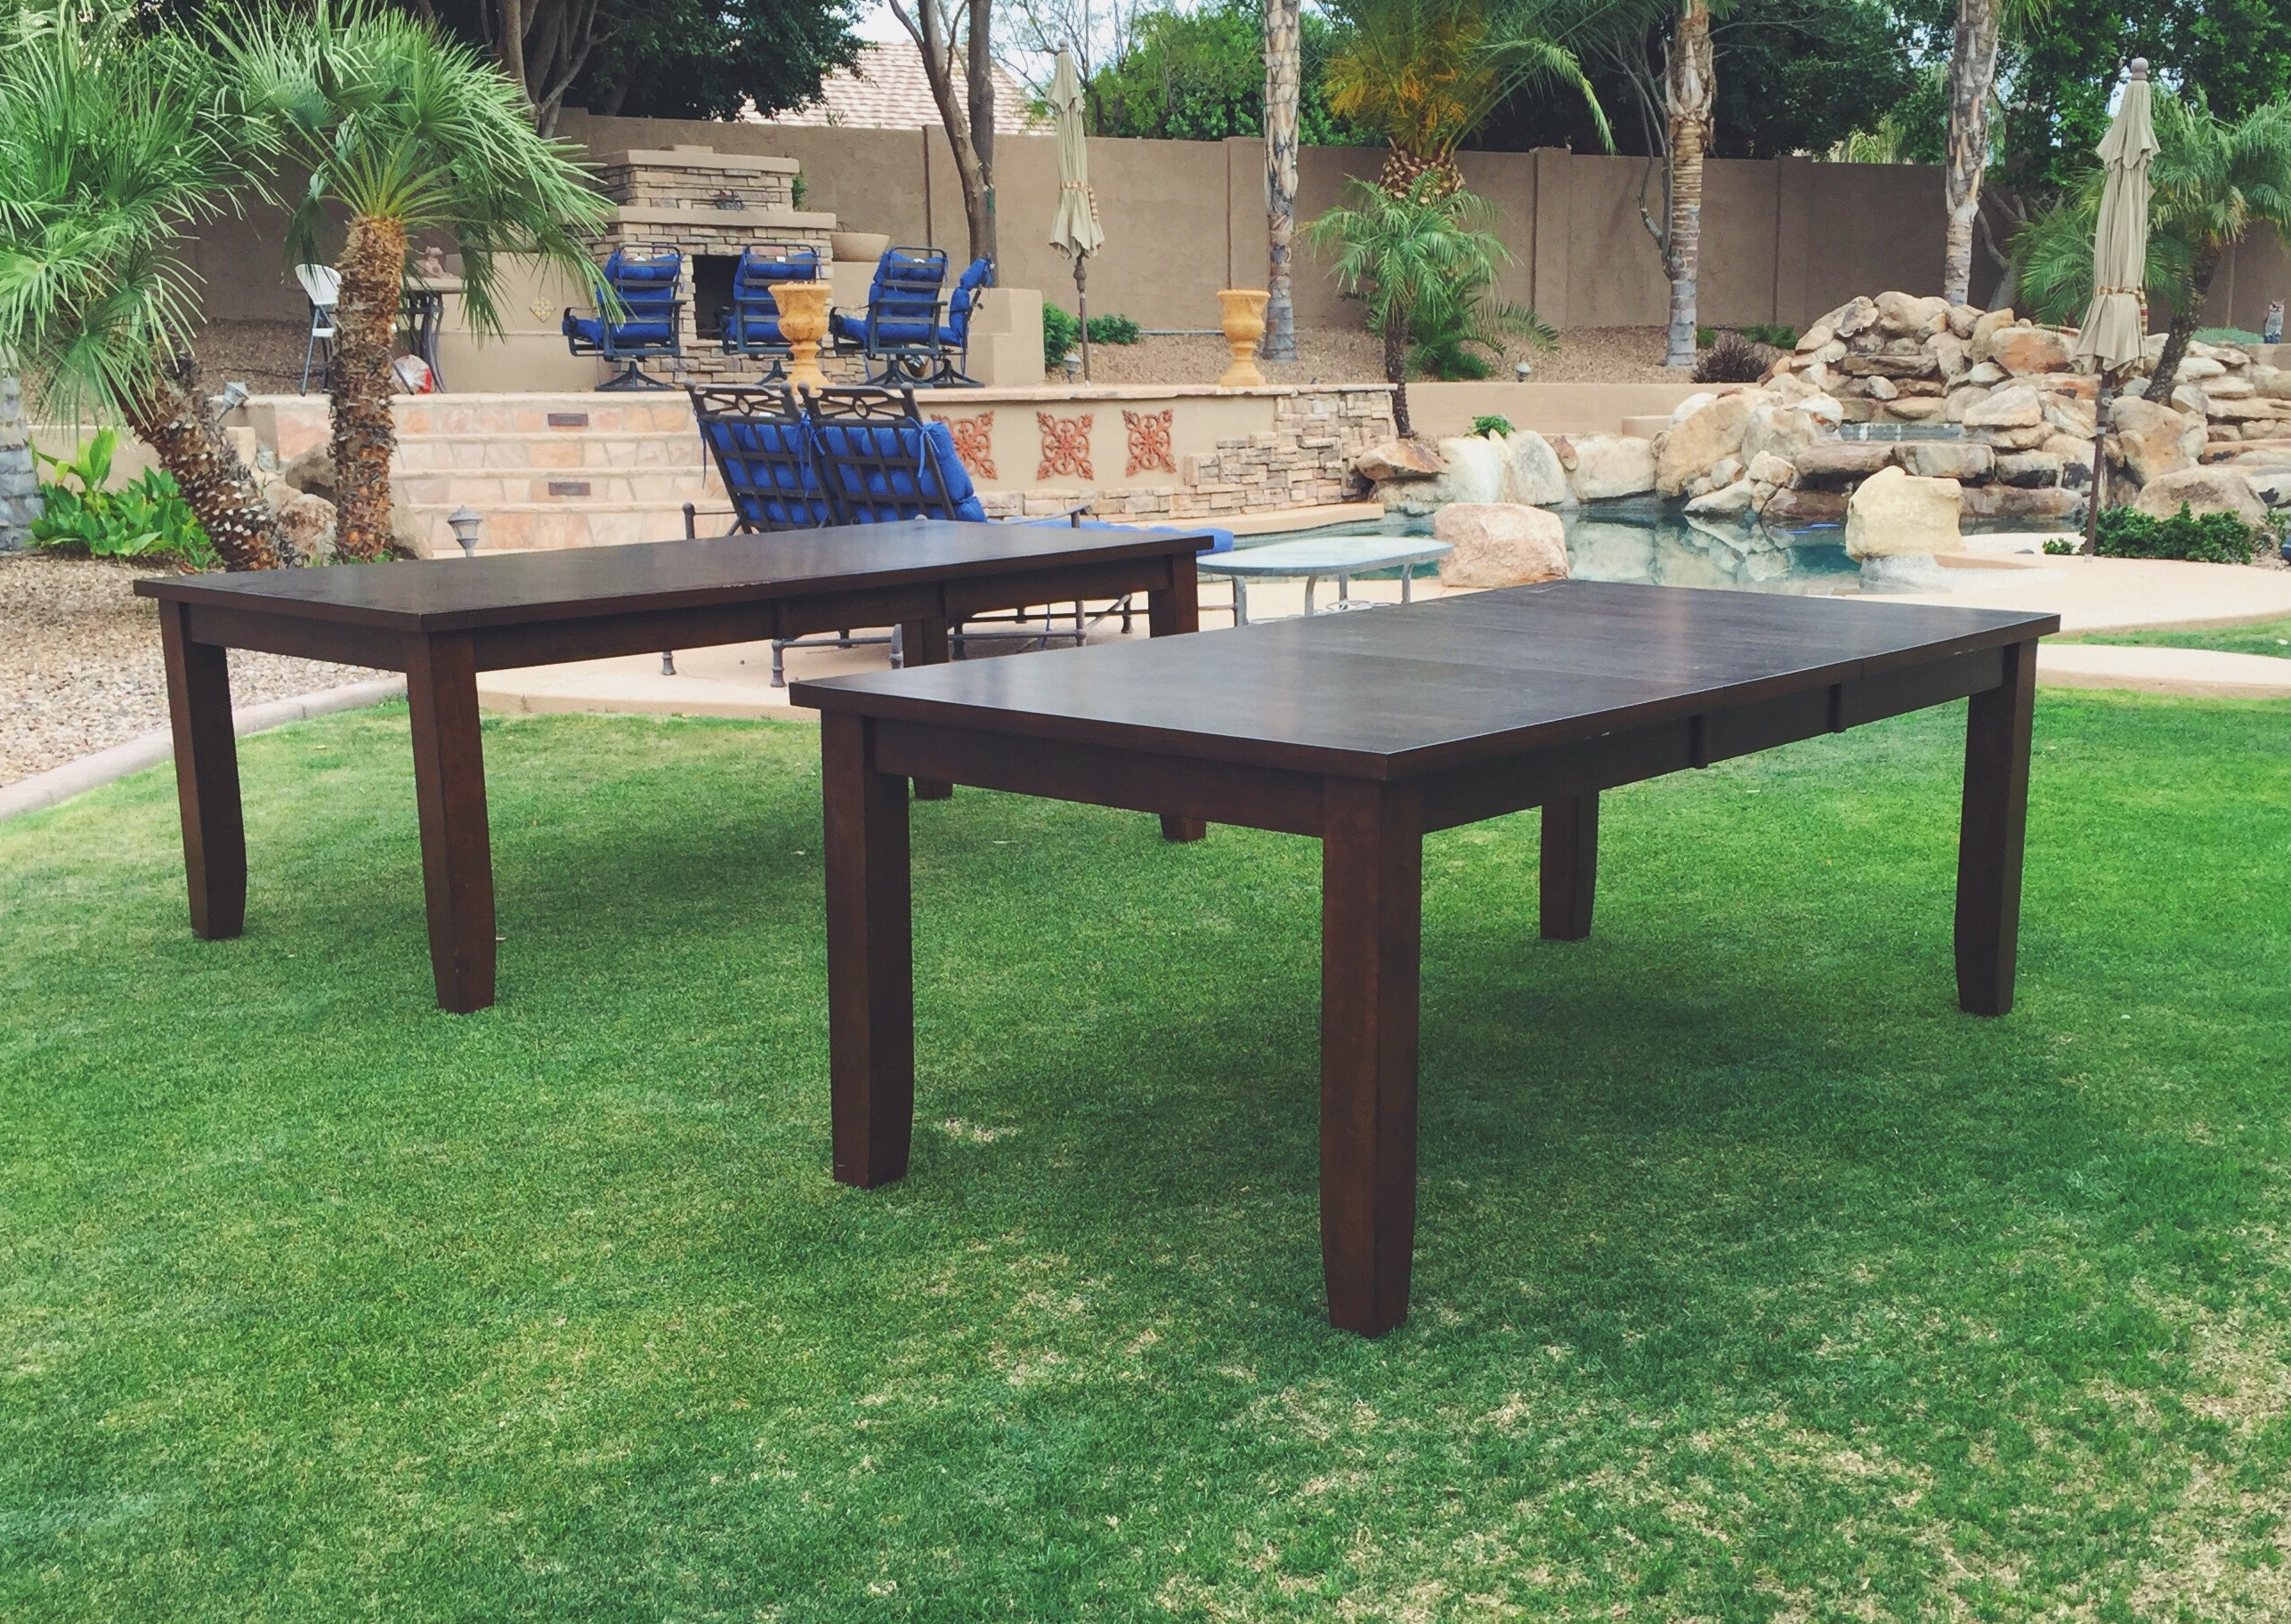 Wood Table Rentals AZ